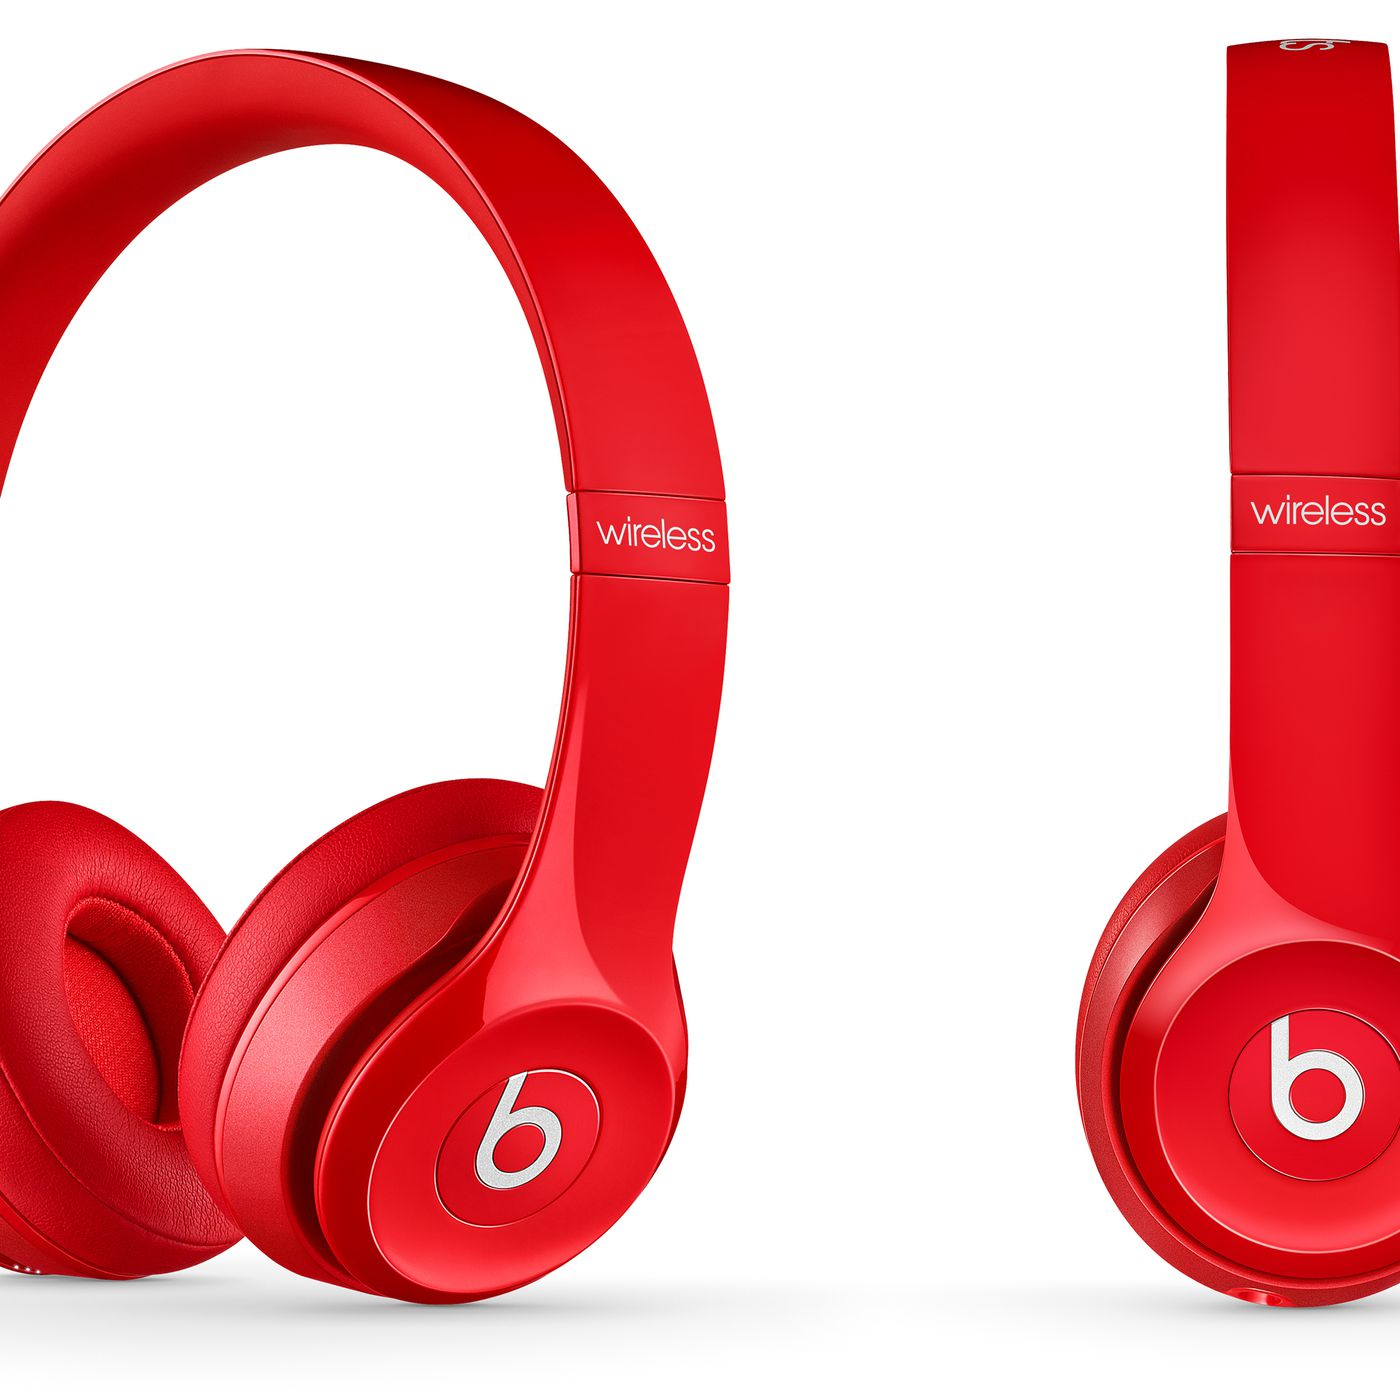 14125557a41 Beats is making a wireless version of its most popular headphones ...